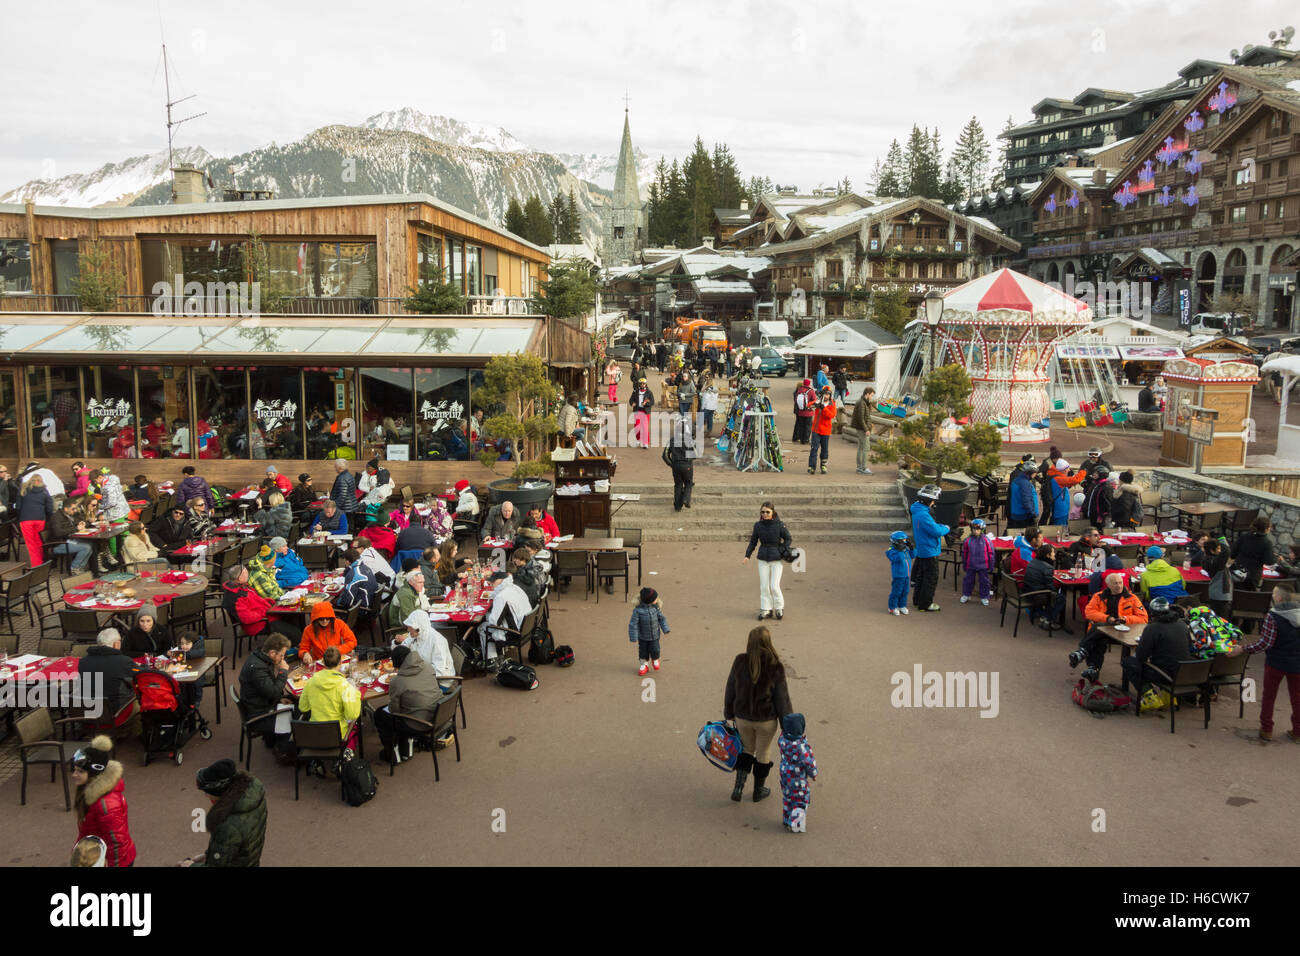 Courchevel 1850 centre with lack of snow during ski season - Stock Image